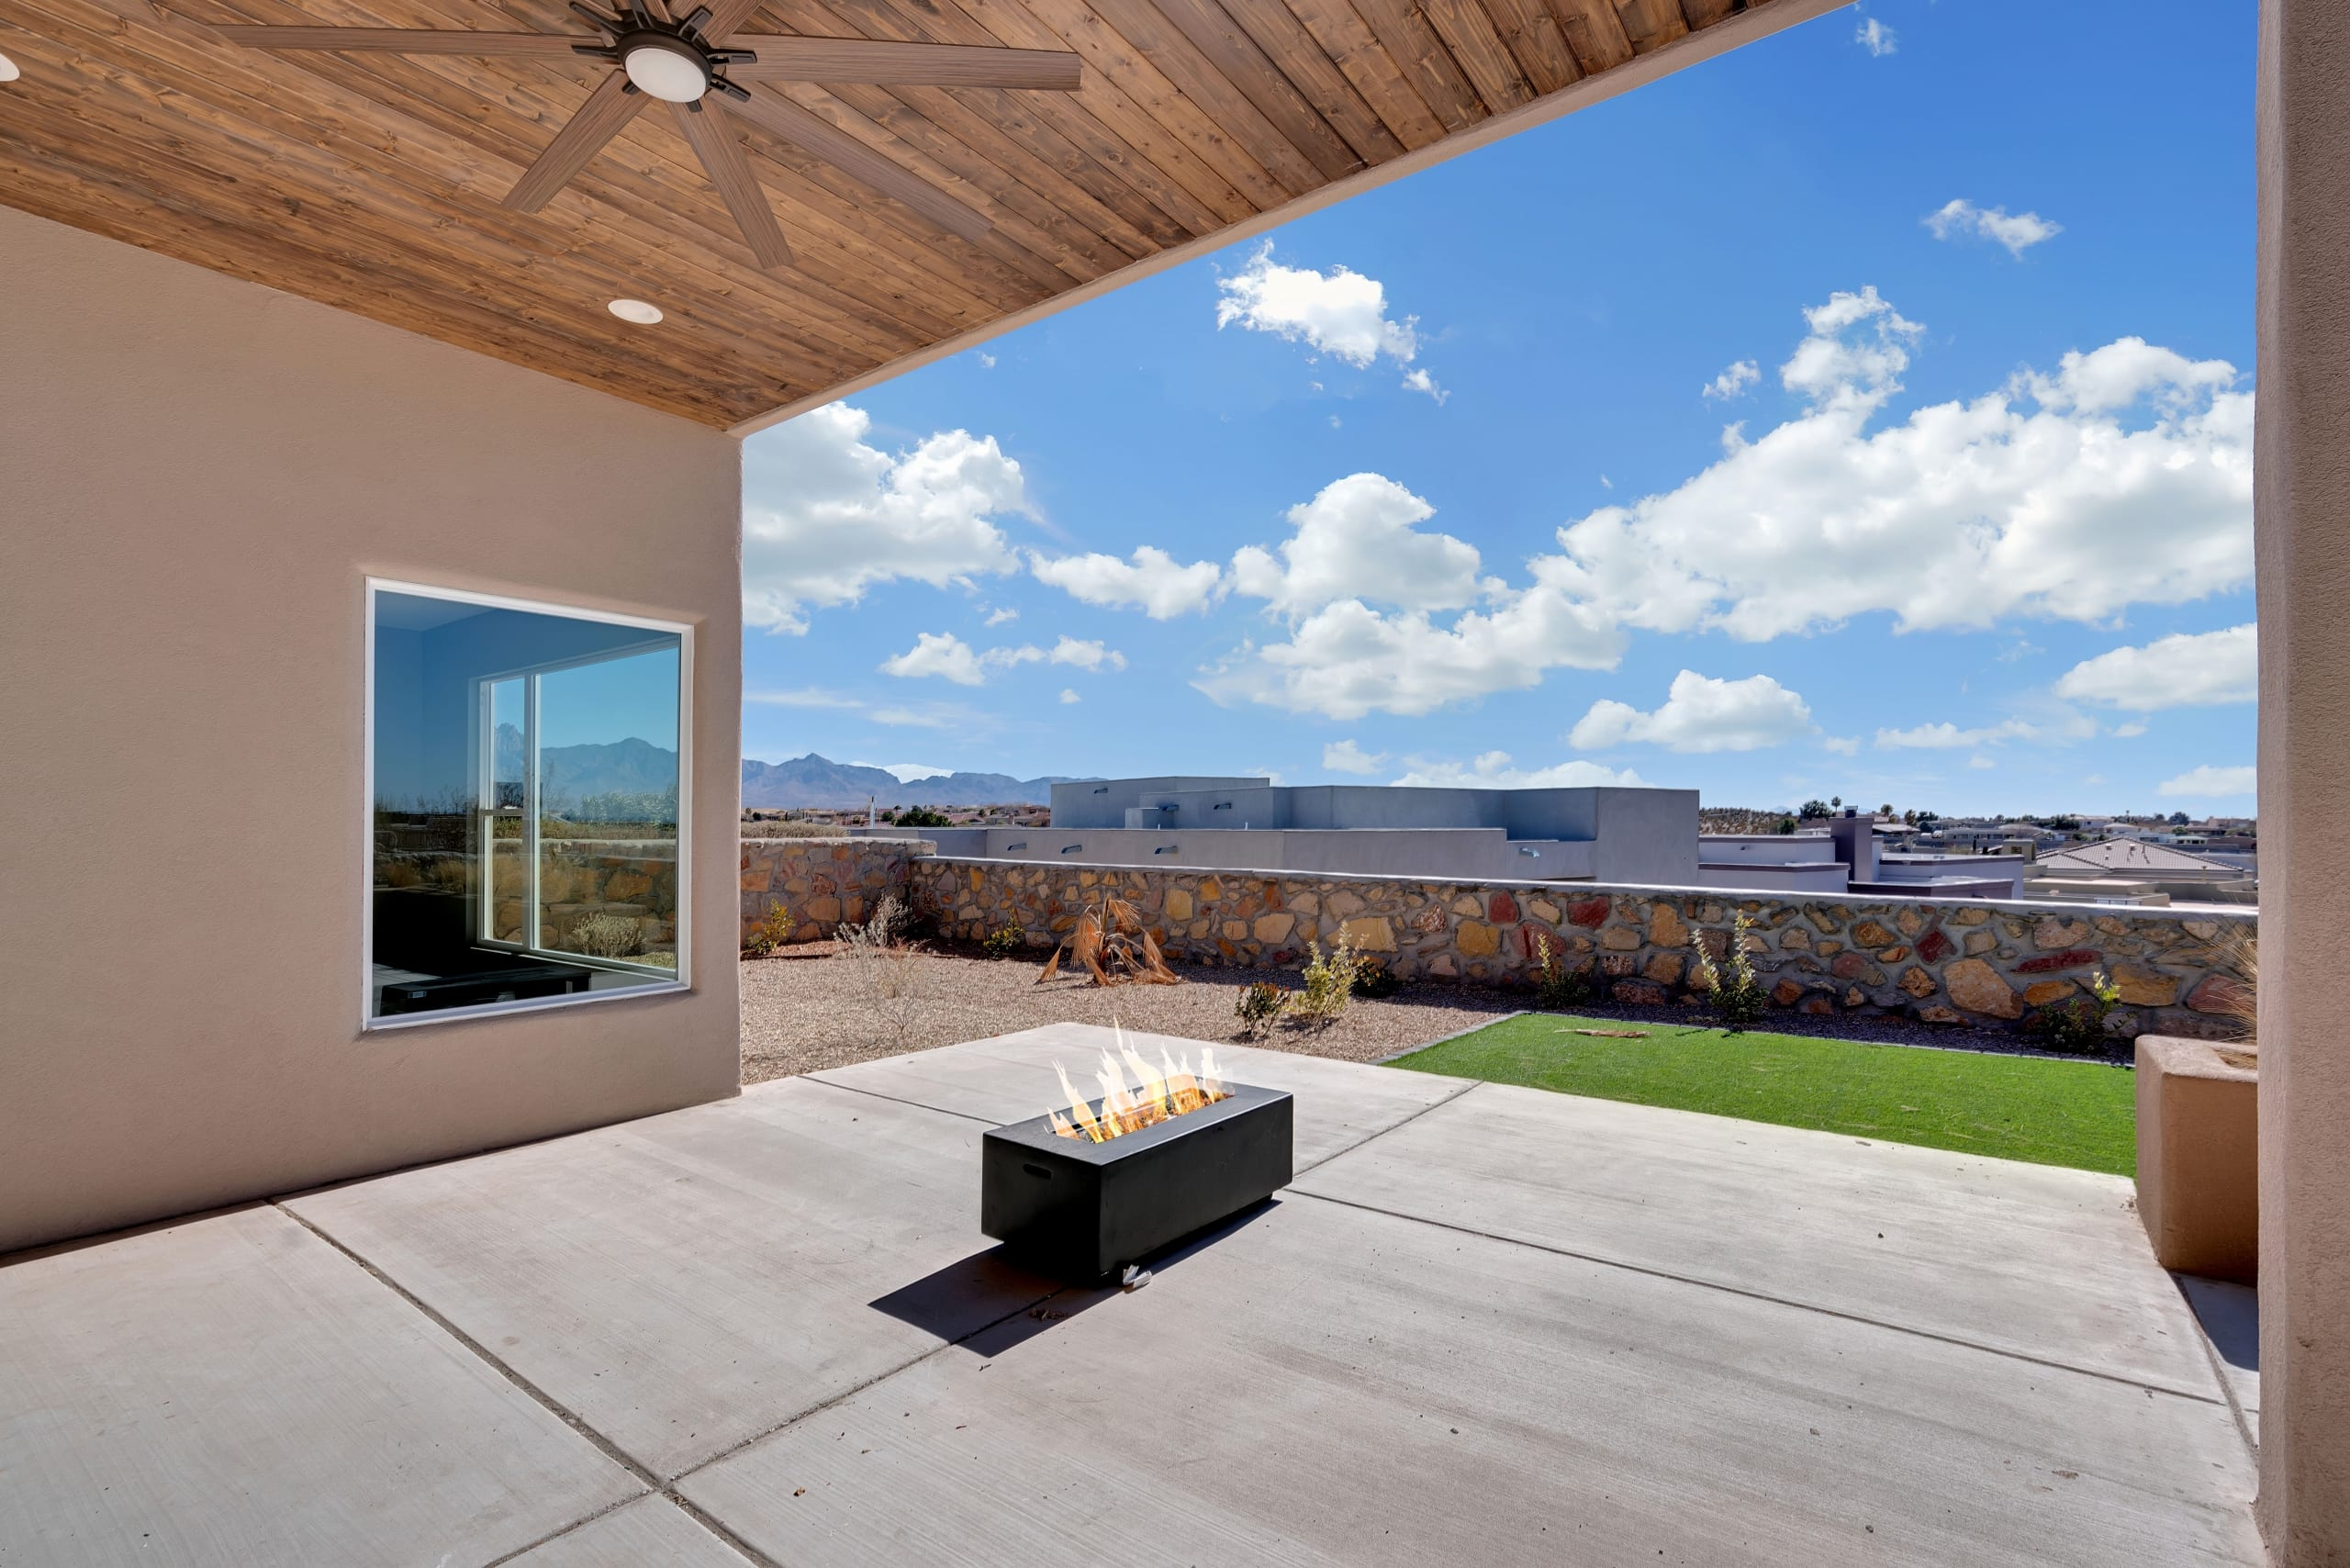 2914 East Spring - View from Patio - Gas Fireplace